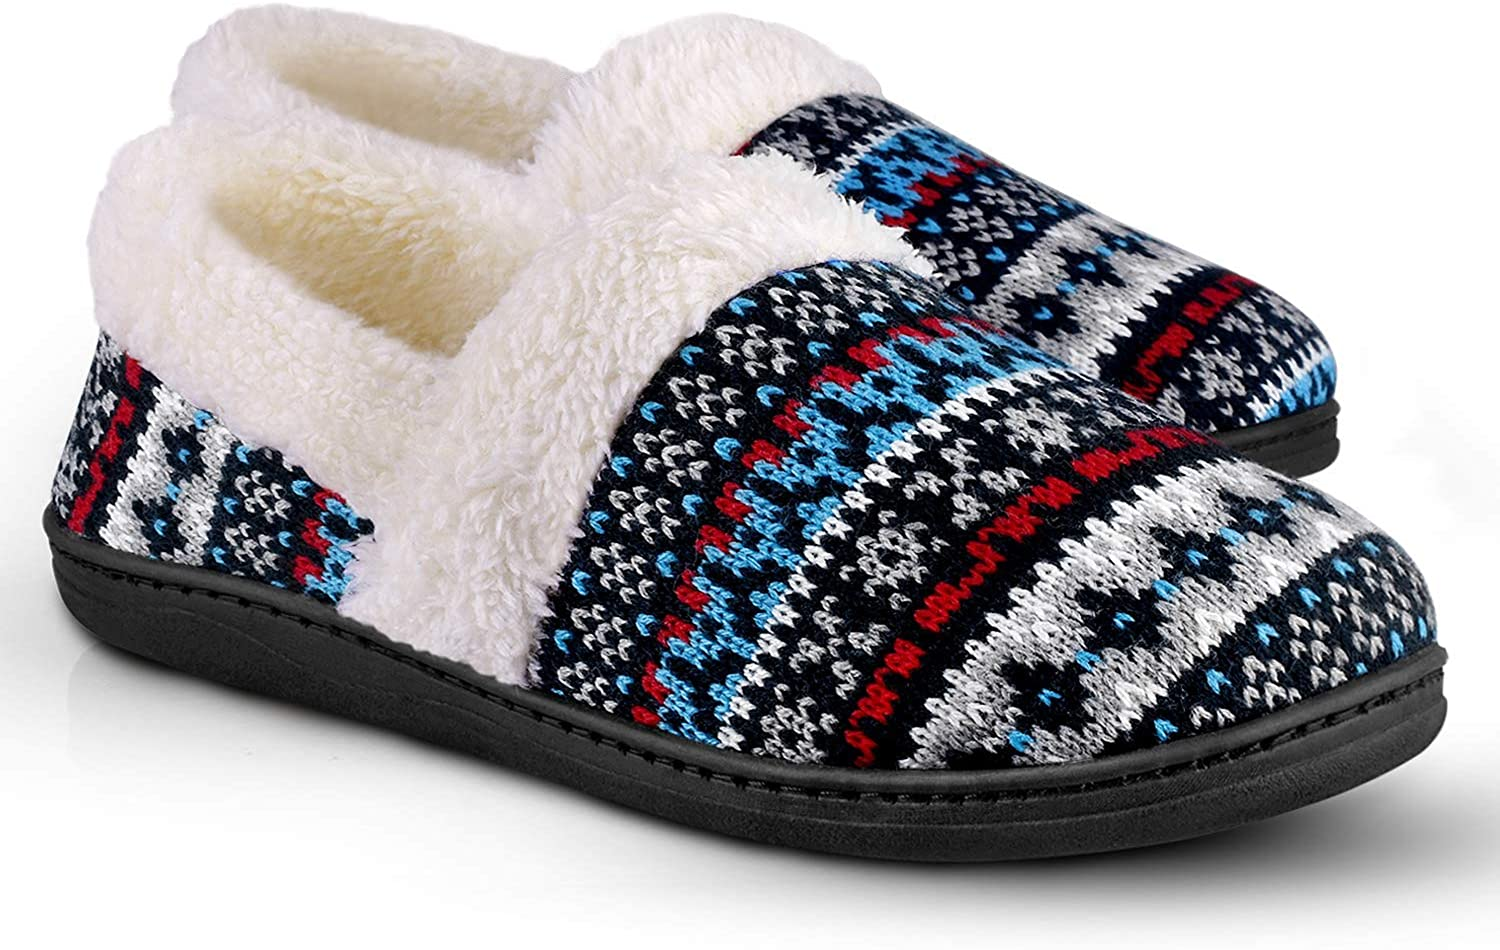 Details about  /SC Home Collection Womens Knit Slip On Fashion House Slippers